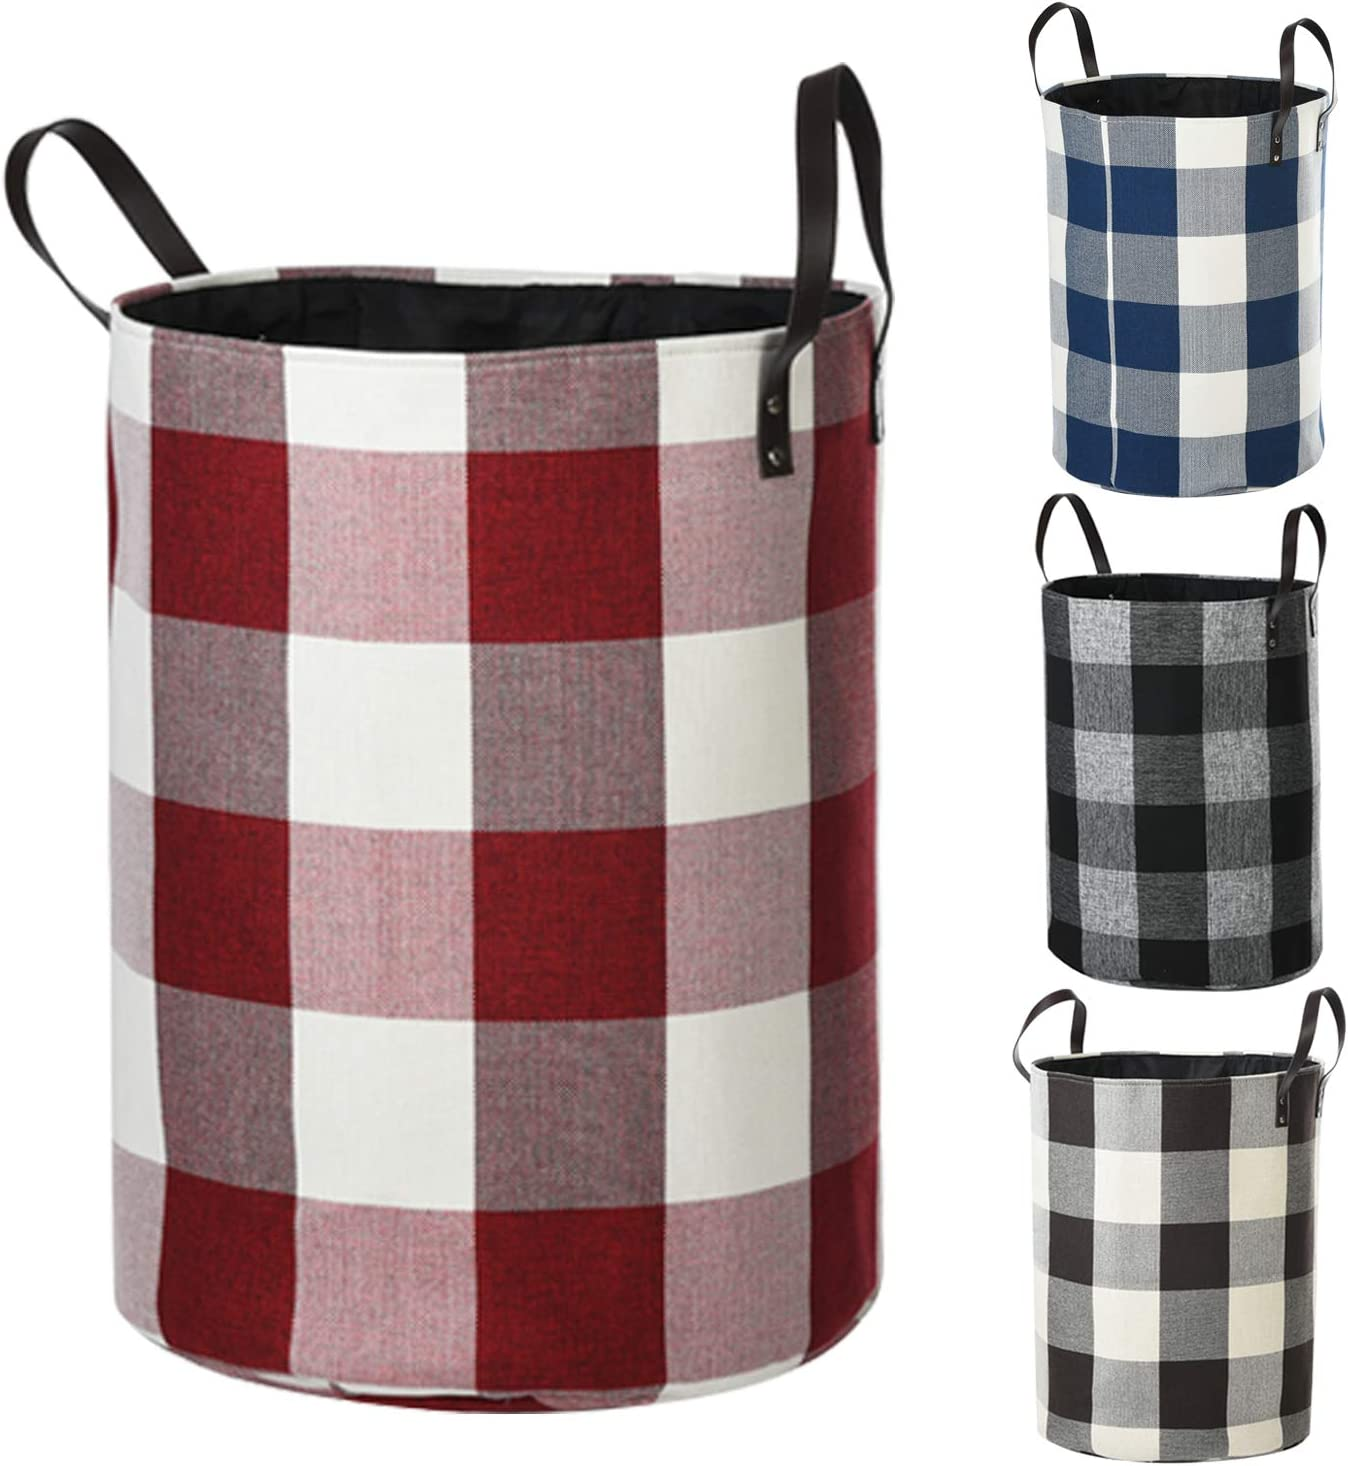 Haundry Foldable Large Laundry Hamper with Durable Leather Handles, 22''Tall Large Round Laundry Basket for Clothes Storage (Red)